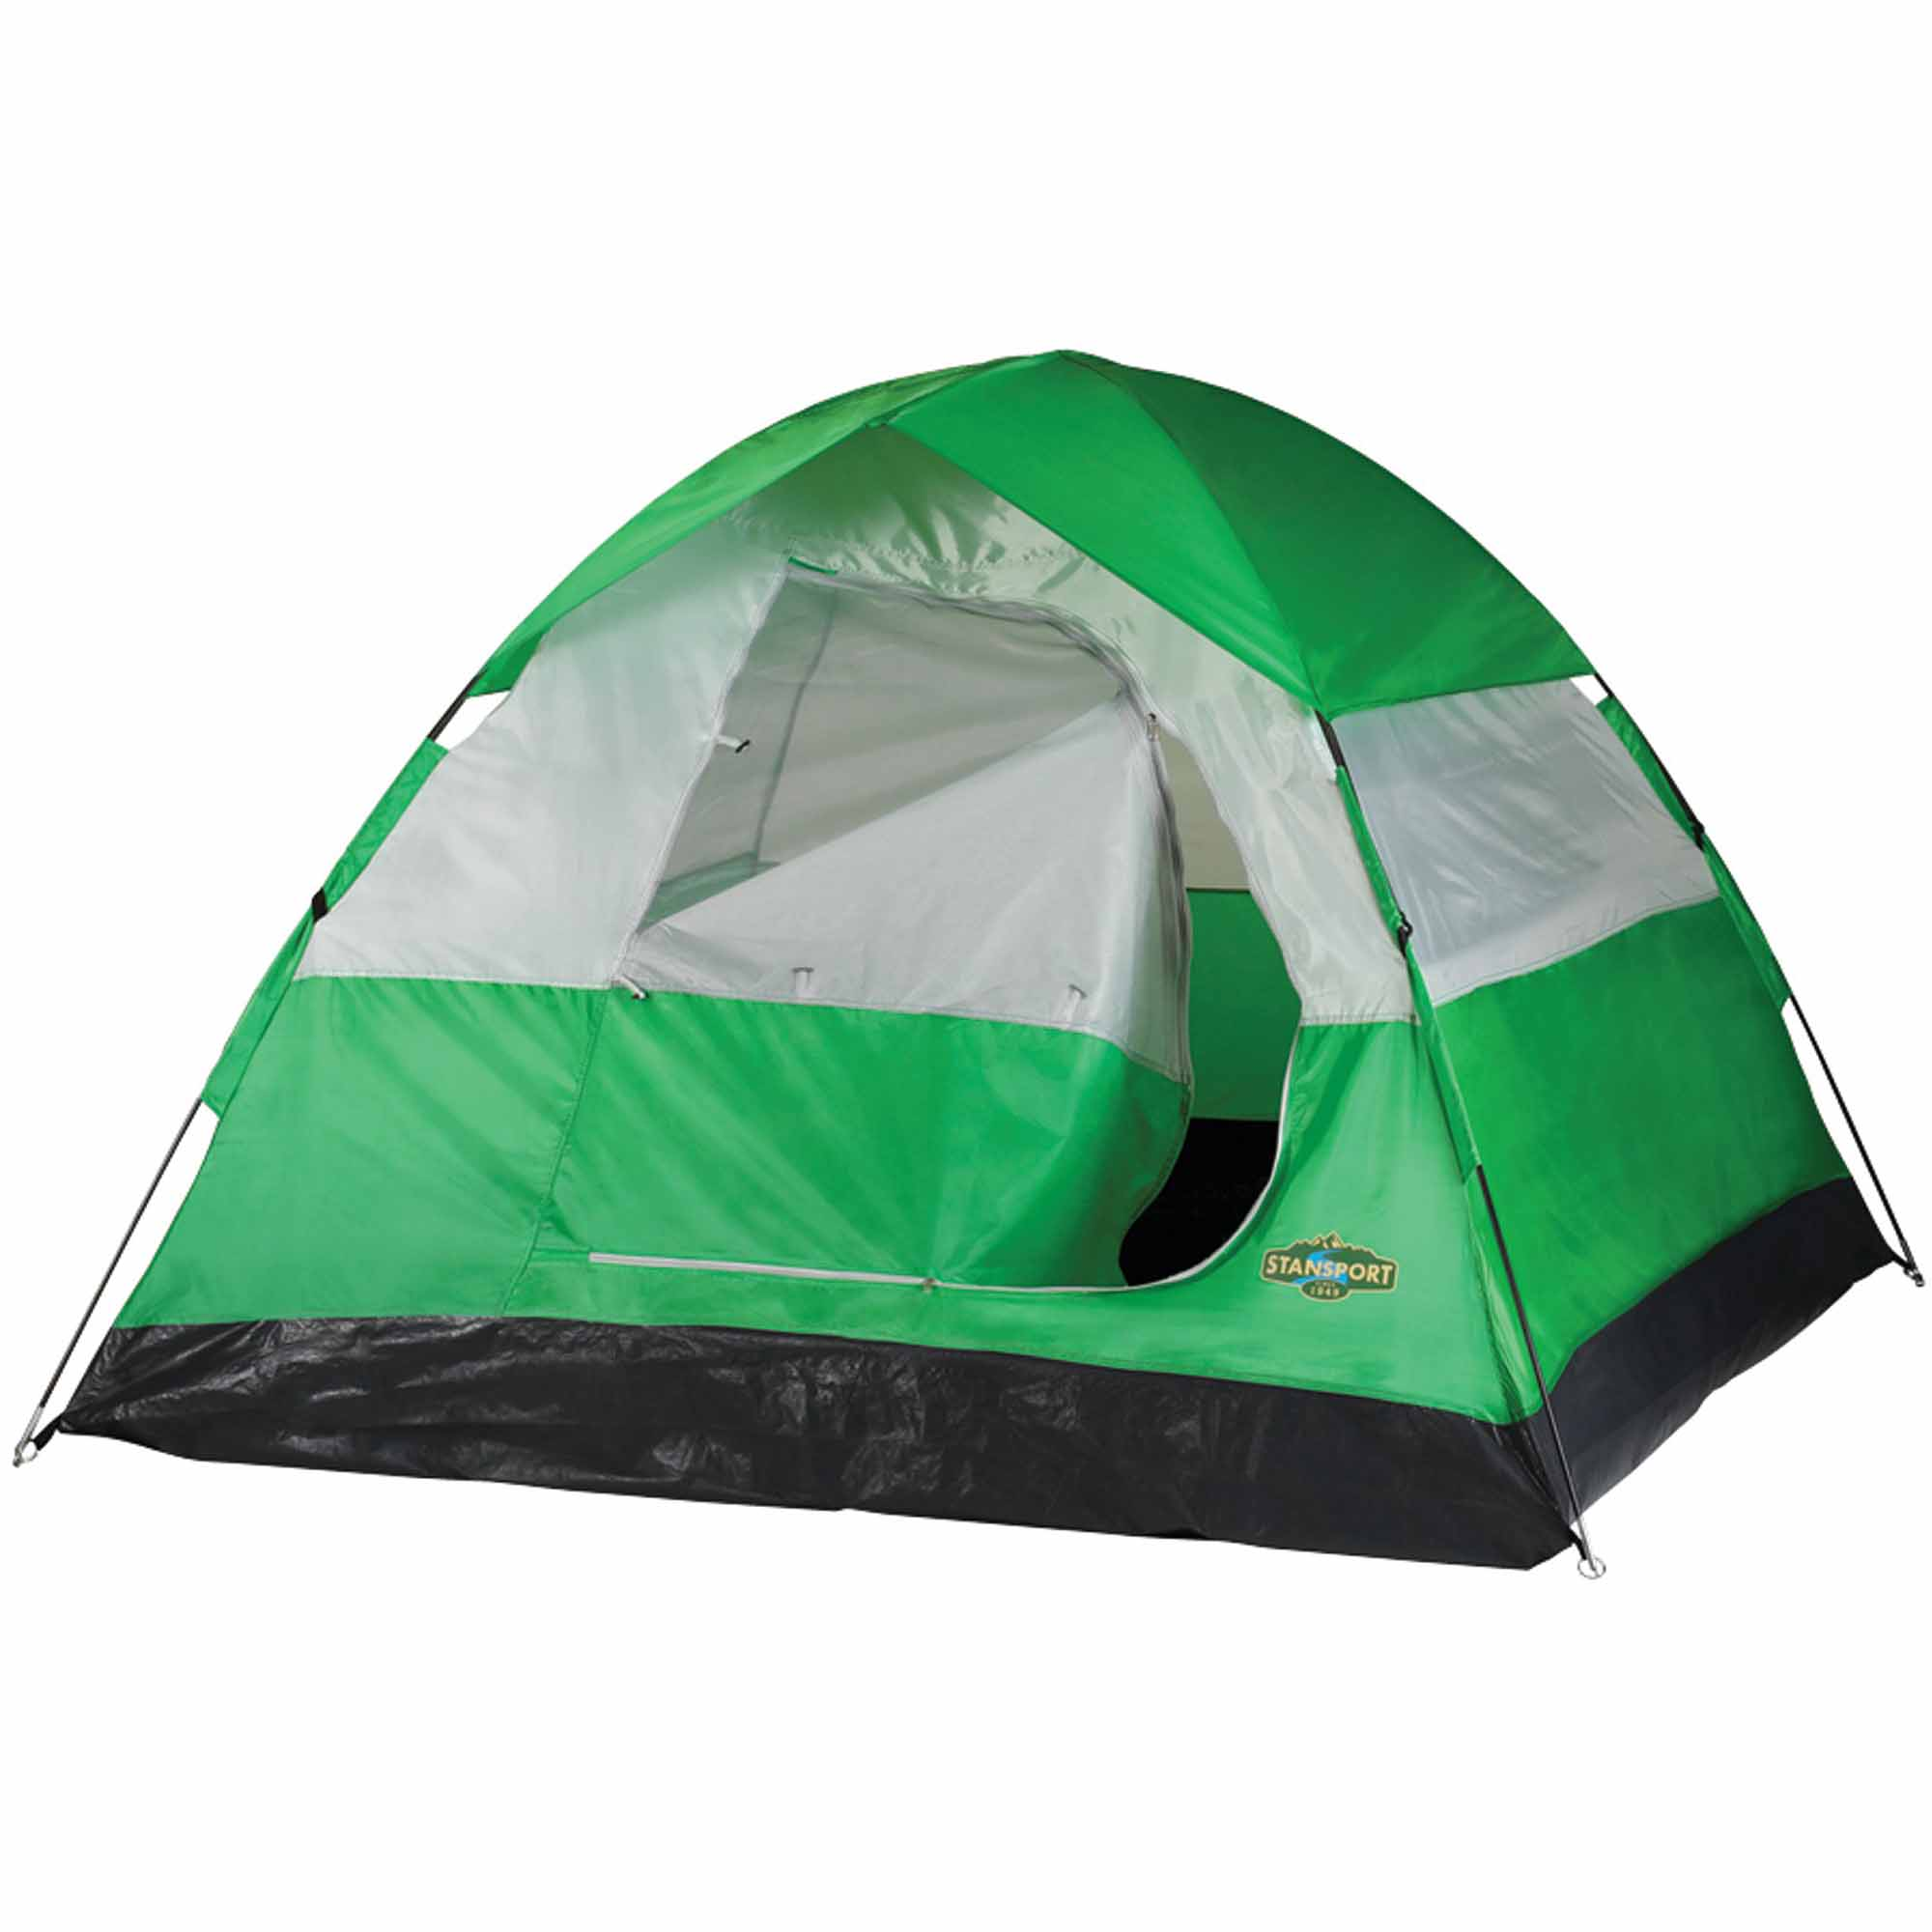 Stansport 725-600 Mt. Kaweah 3-Season Tent